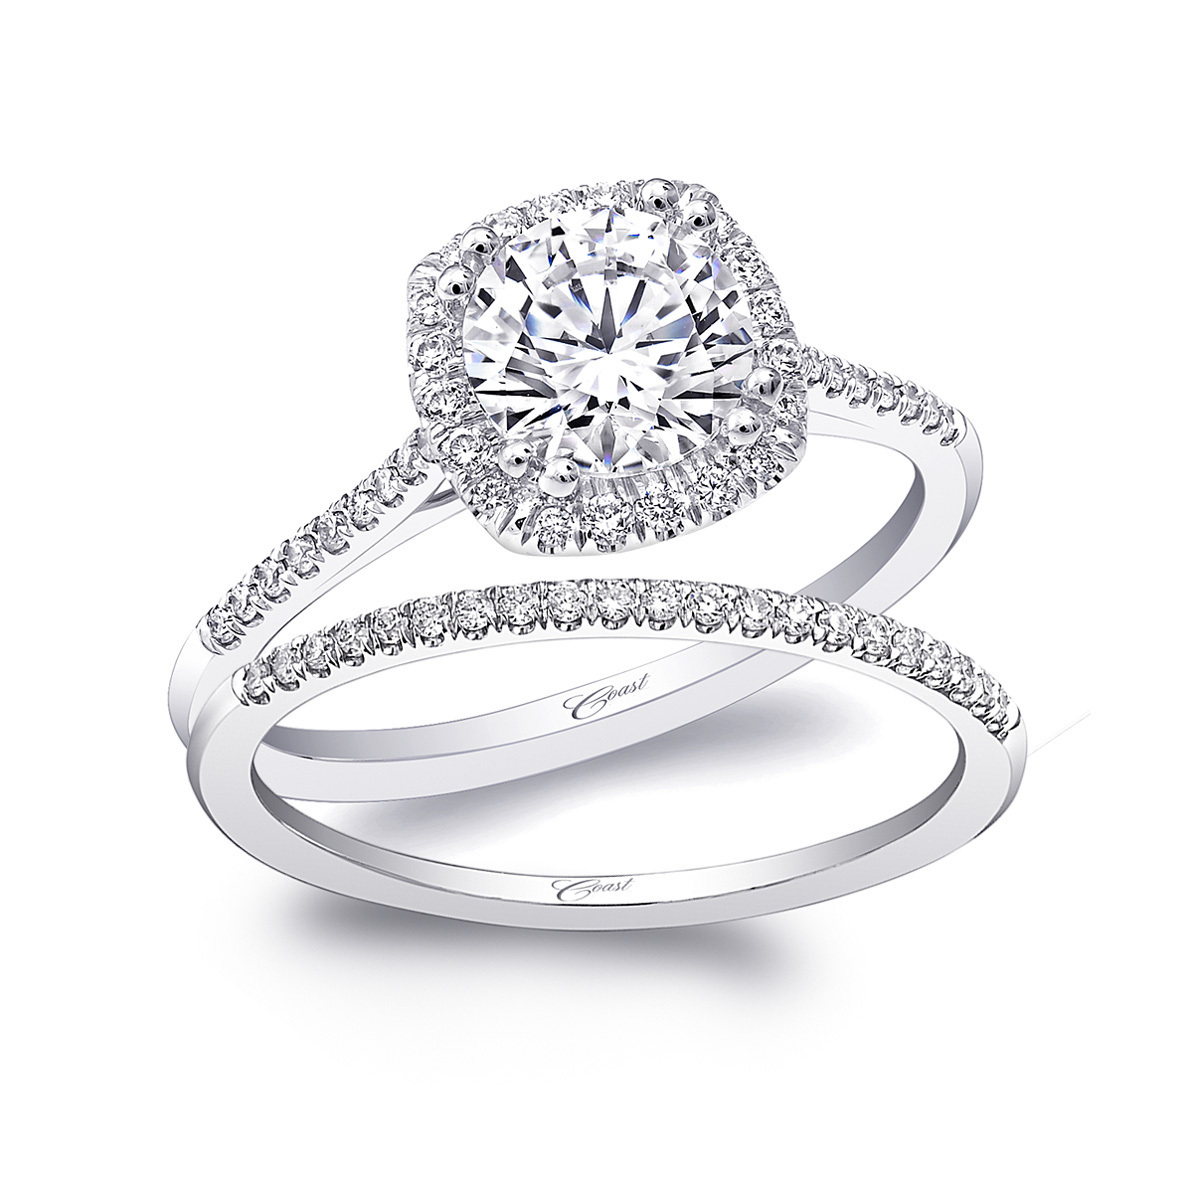 Charisma Engagement Ring - Petite Cushion Halo